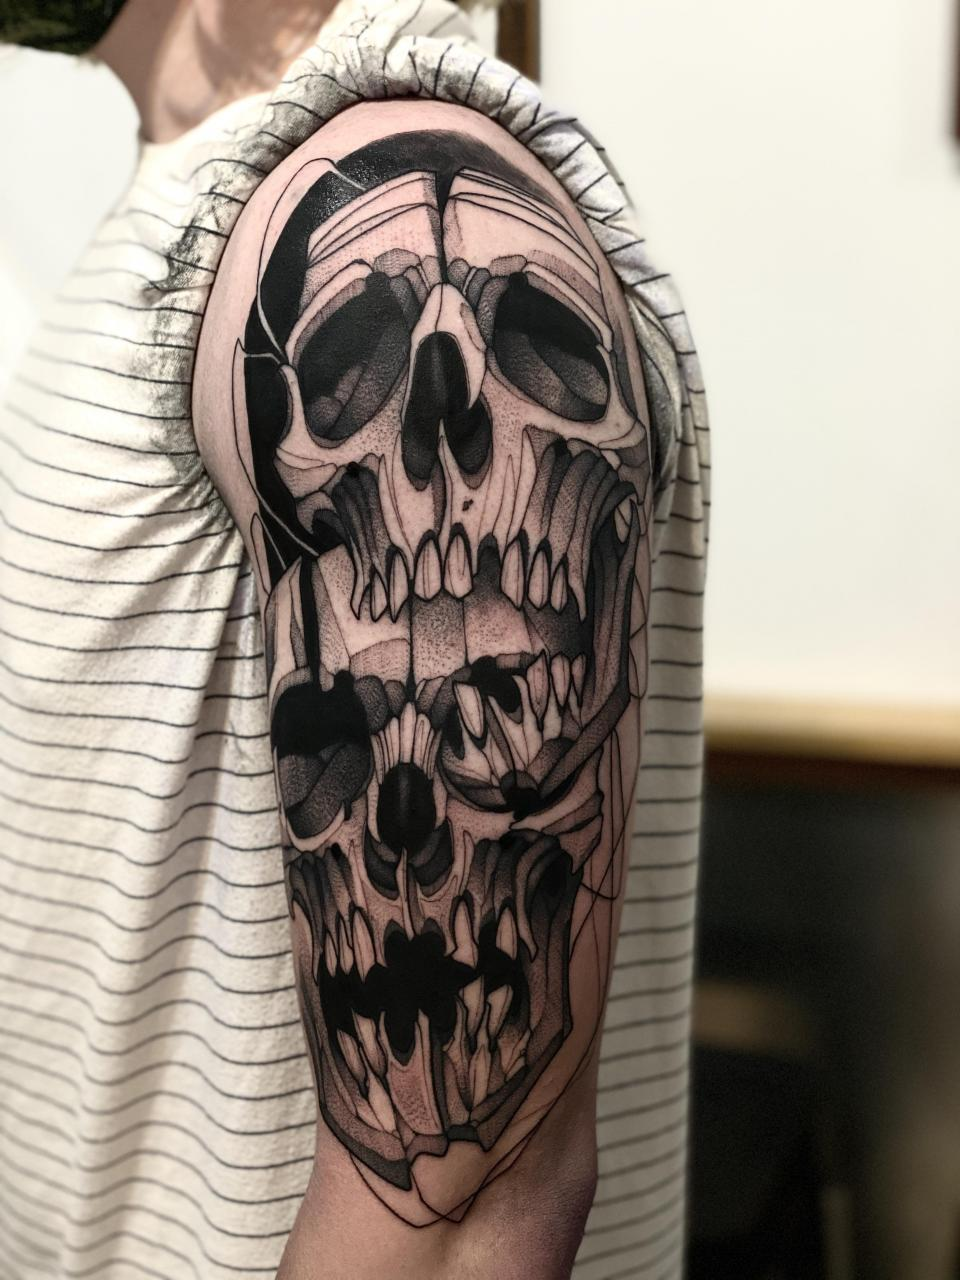 Skull shoulder piece done by Max LaCroix at Akara Arts in Milwaukee, WI